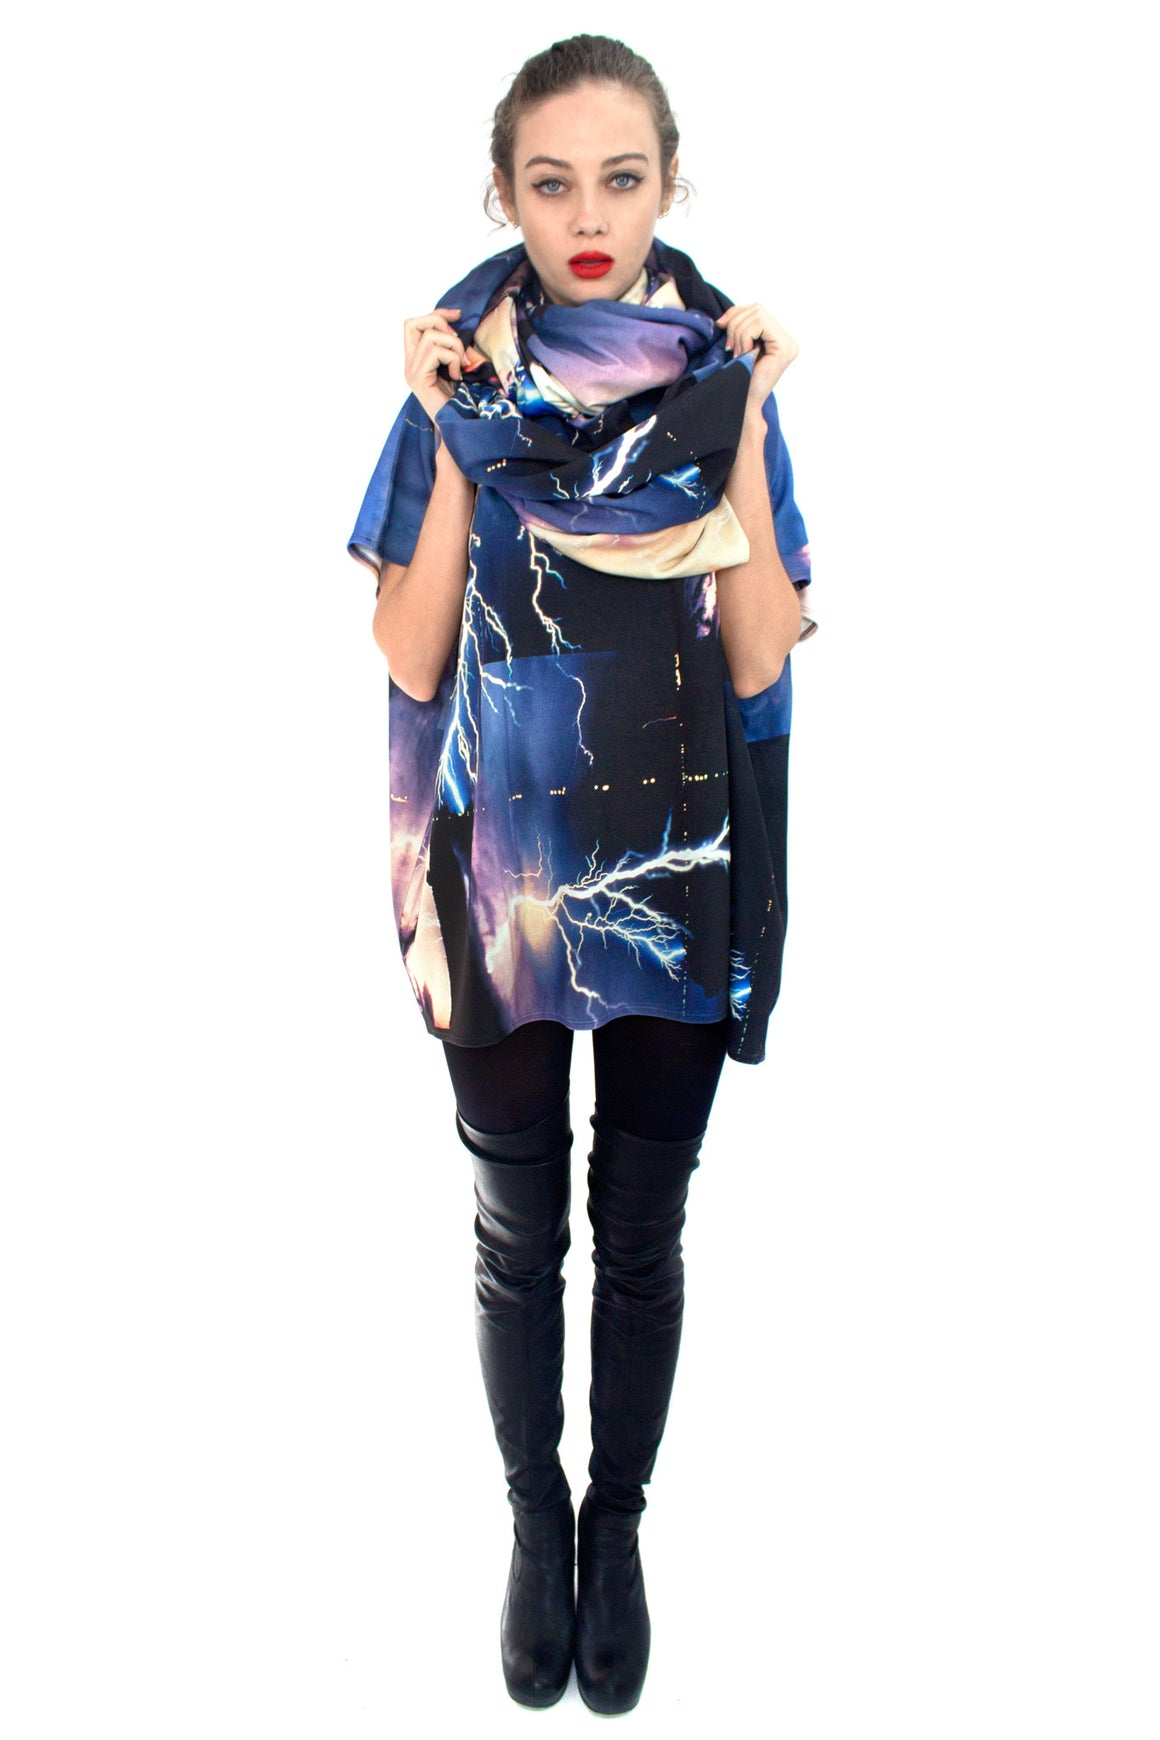 Lightning Top, Shadowplay New York, Galaxy Print Clothing